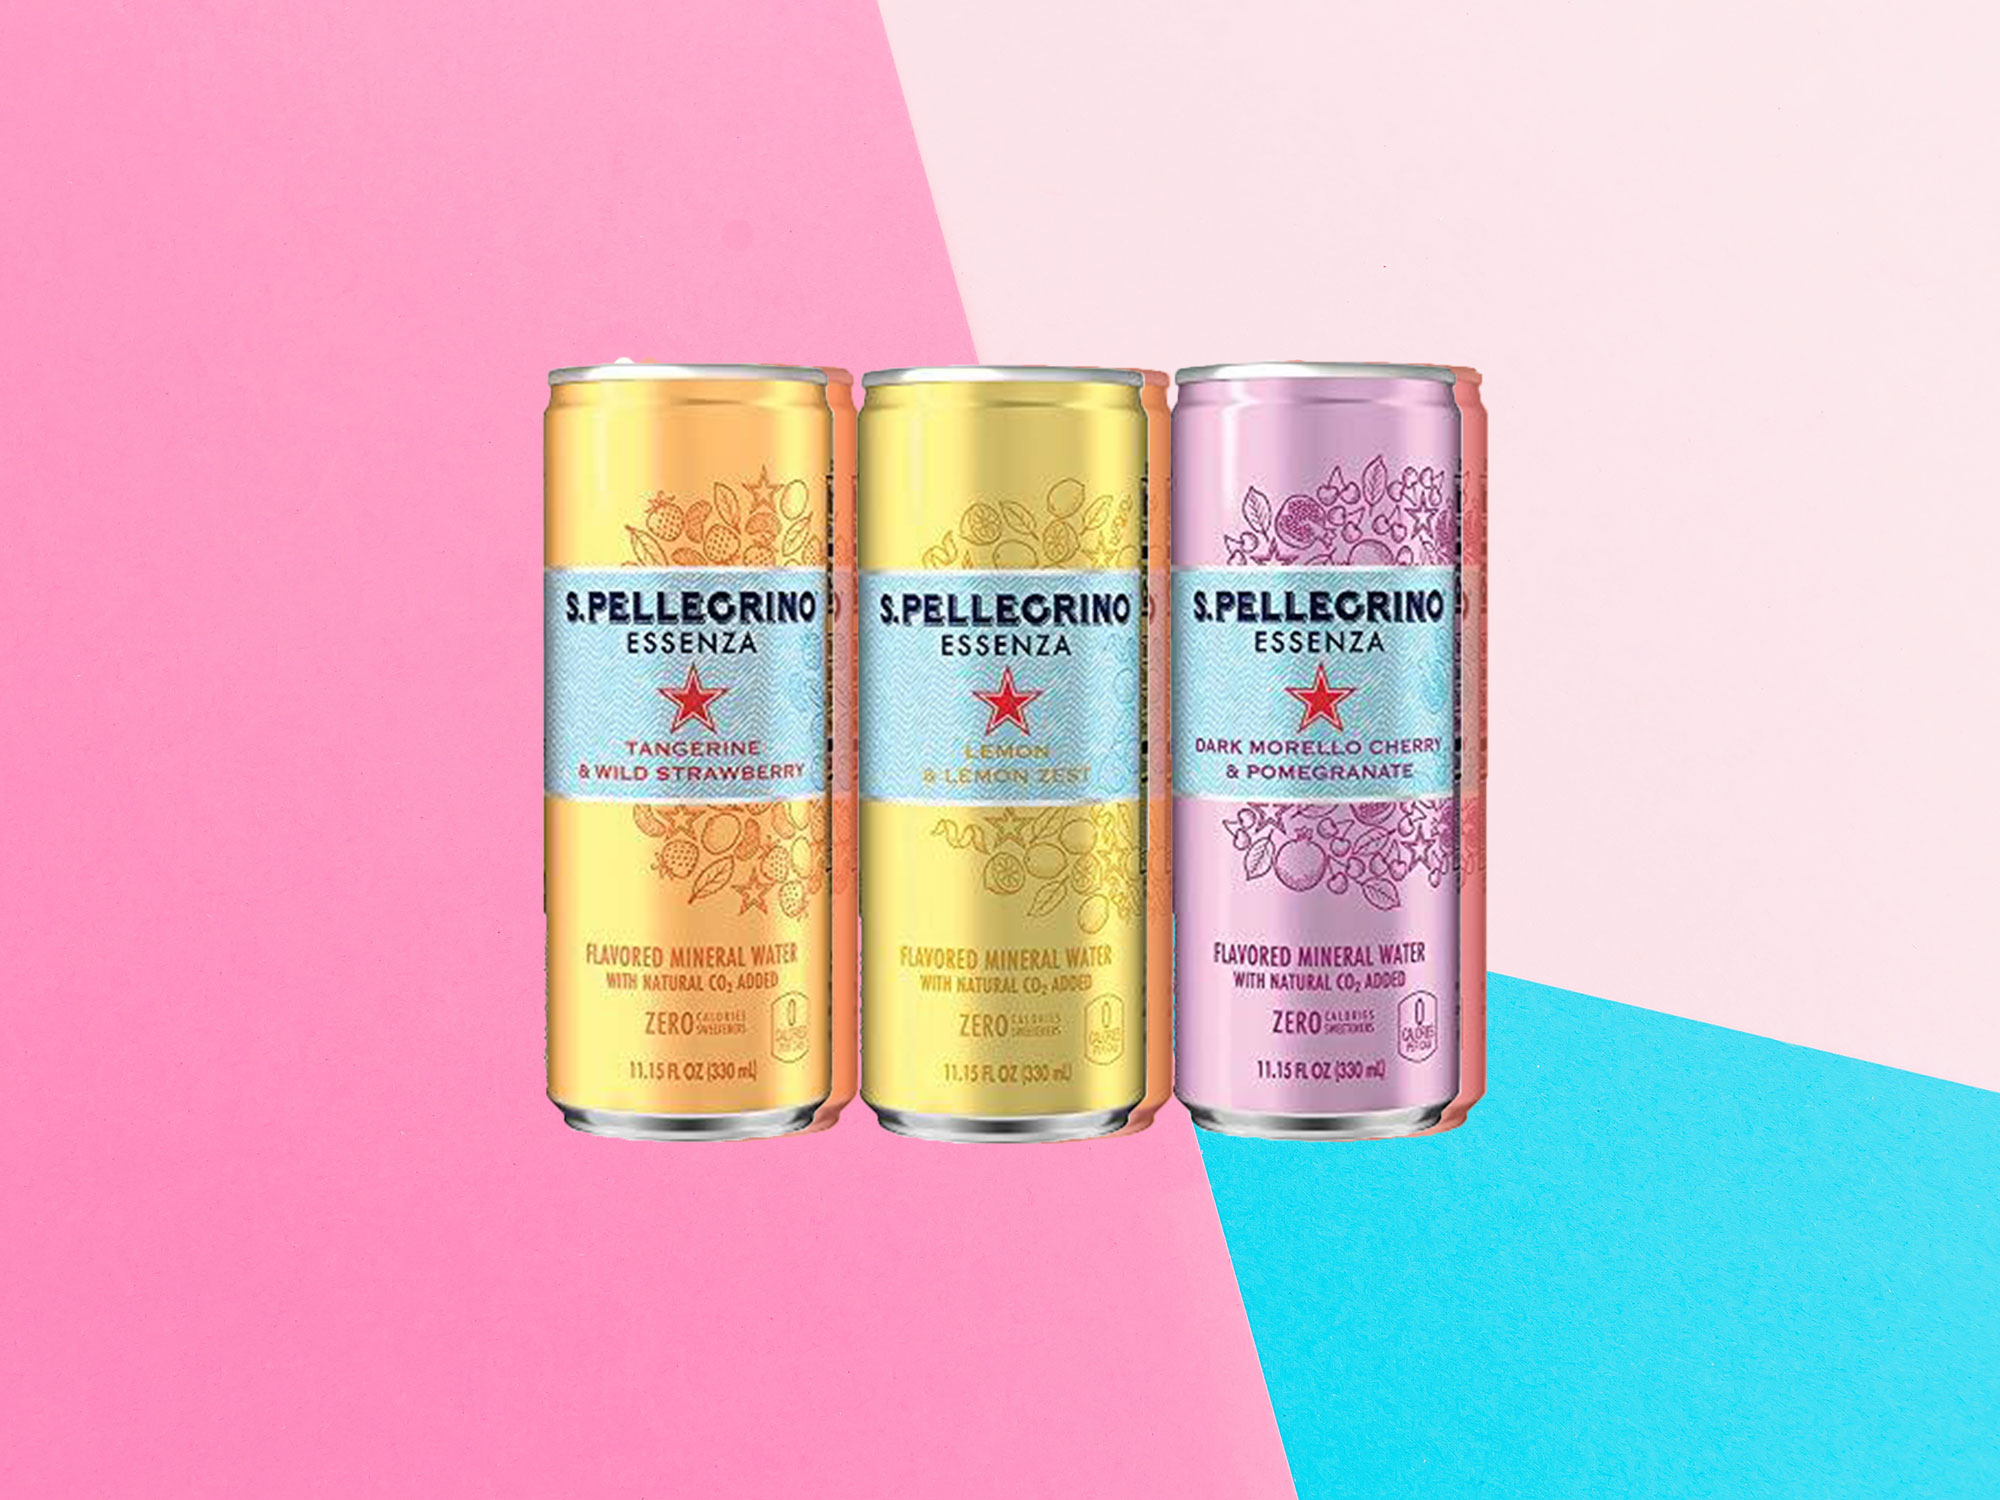 S.Pellegrino Introduces 3 New Flavors of Sparkling Water